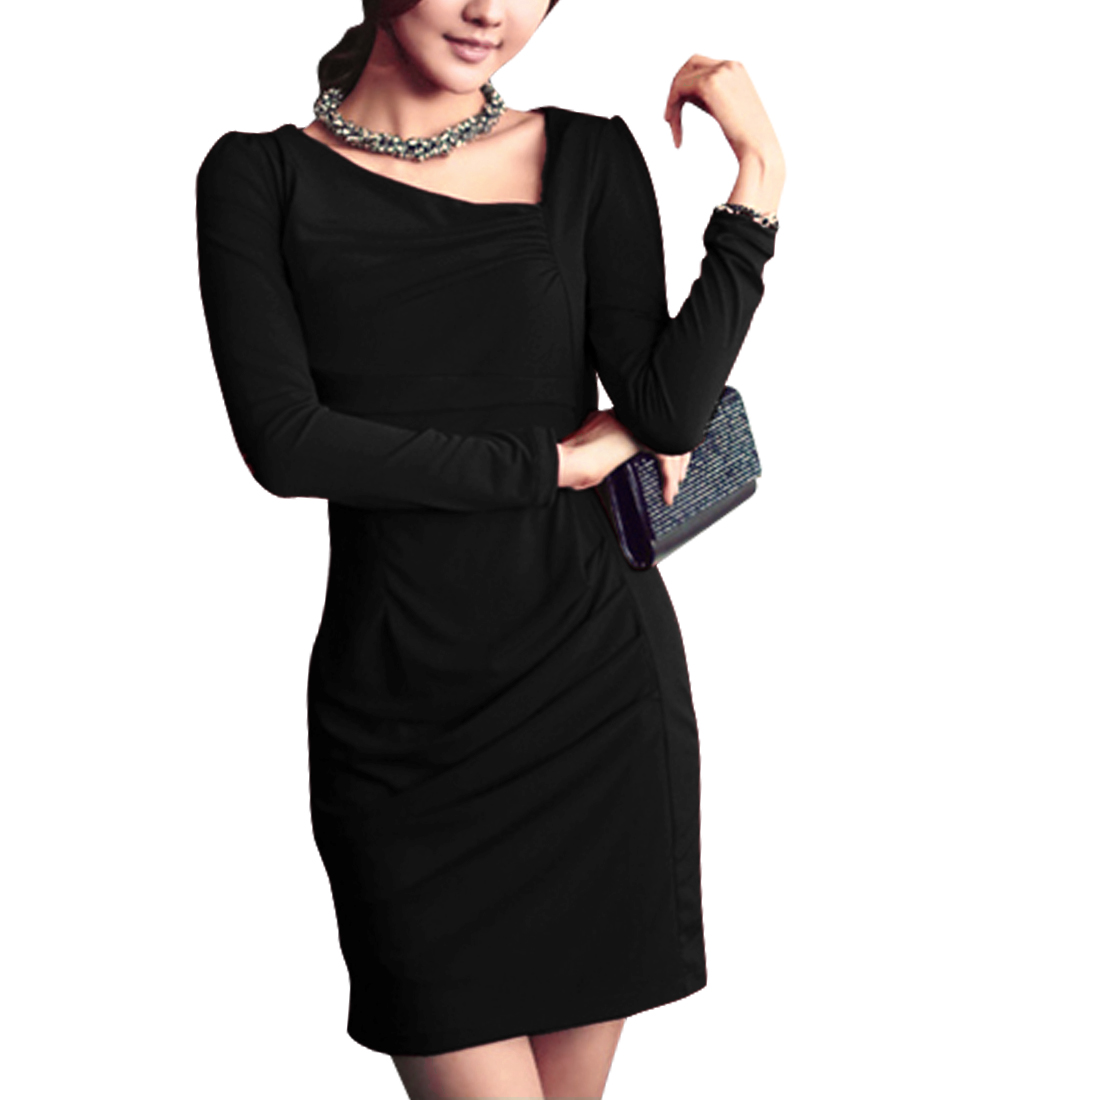 Women Long Sleeved Black Sexy Sheath Dress XS